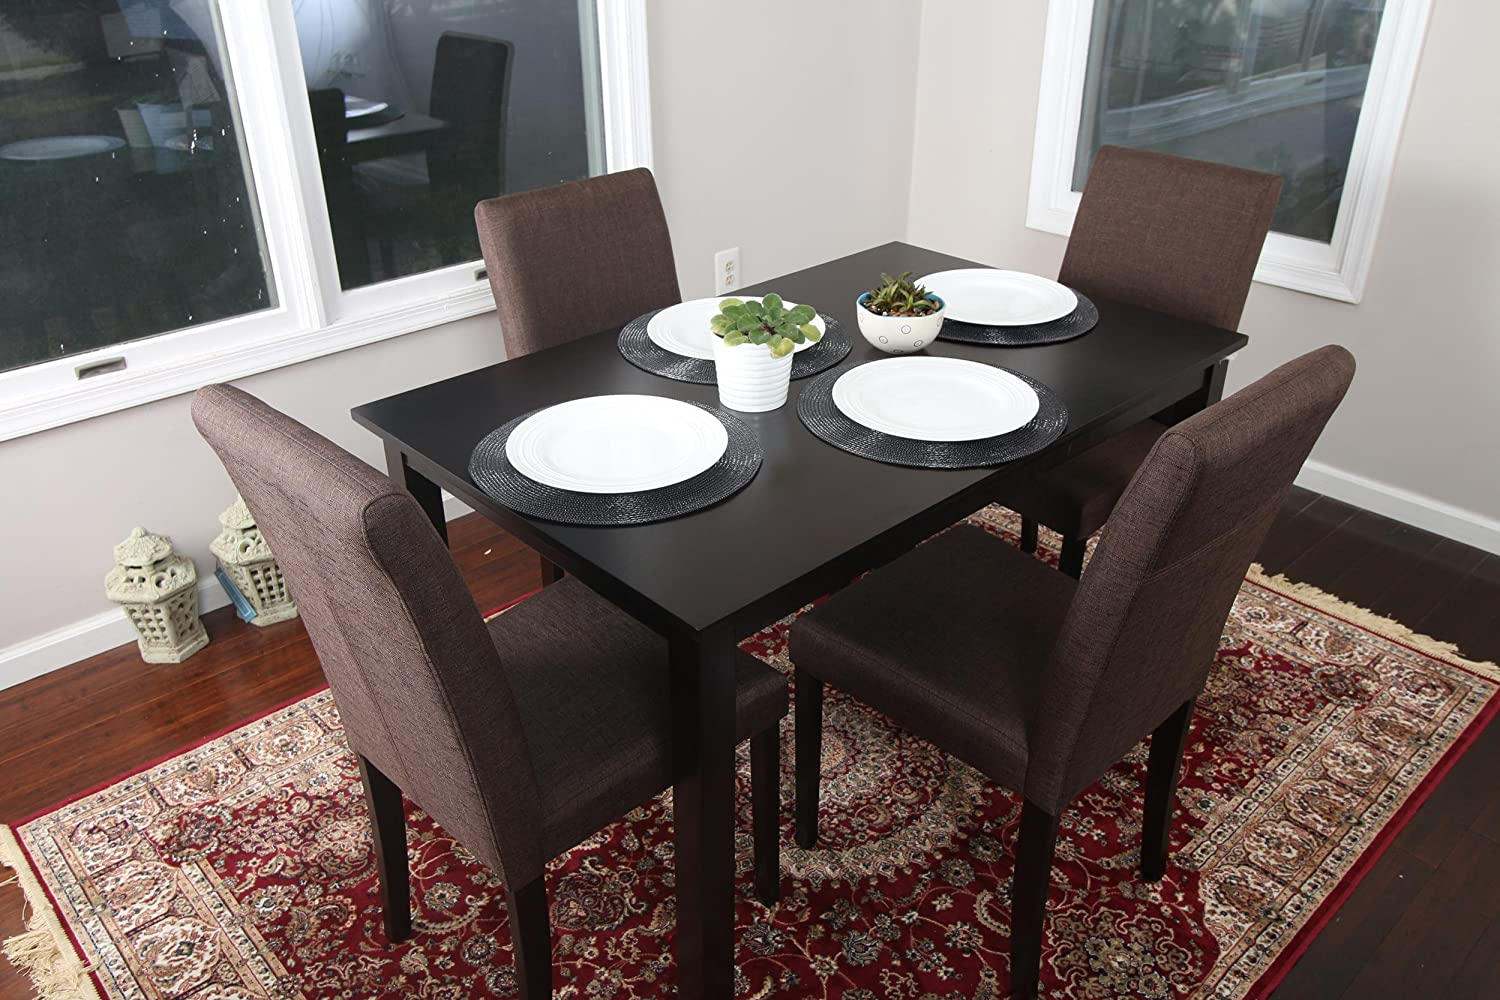 5 PC Chocolate Brown Canvas Linen 4 Person Table and Chairs Brown Dining Dinette - 150255 Chocolate Brown Parson